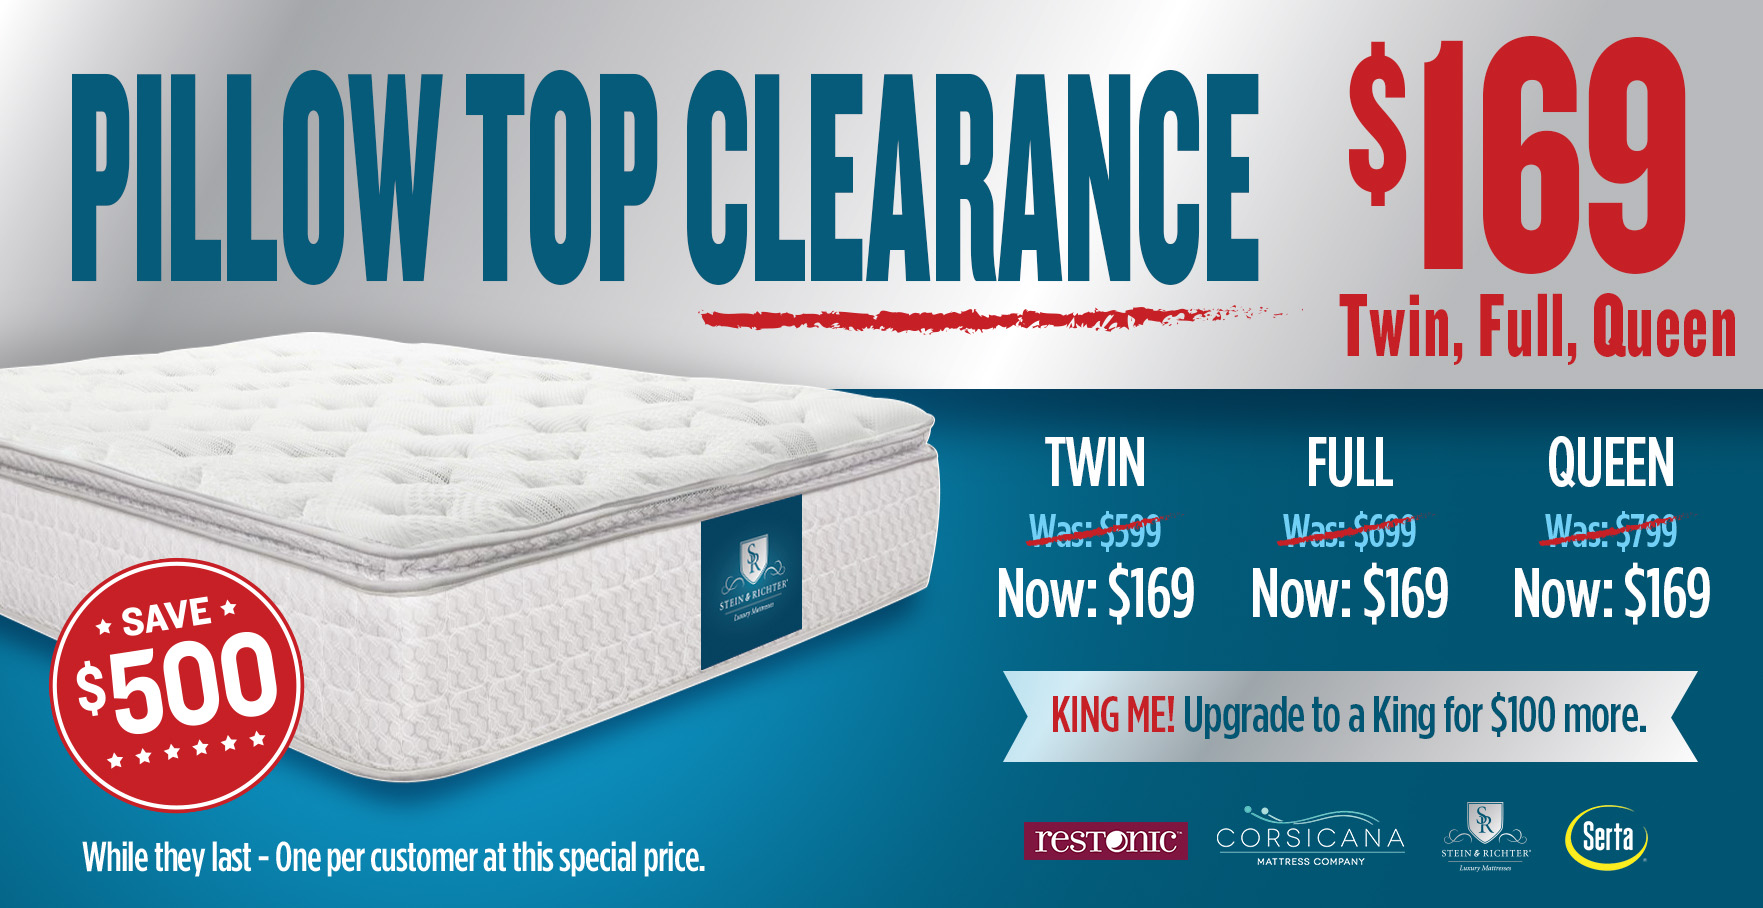 Pillow Top Clearance